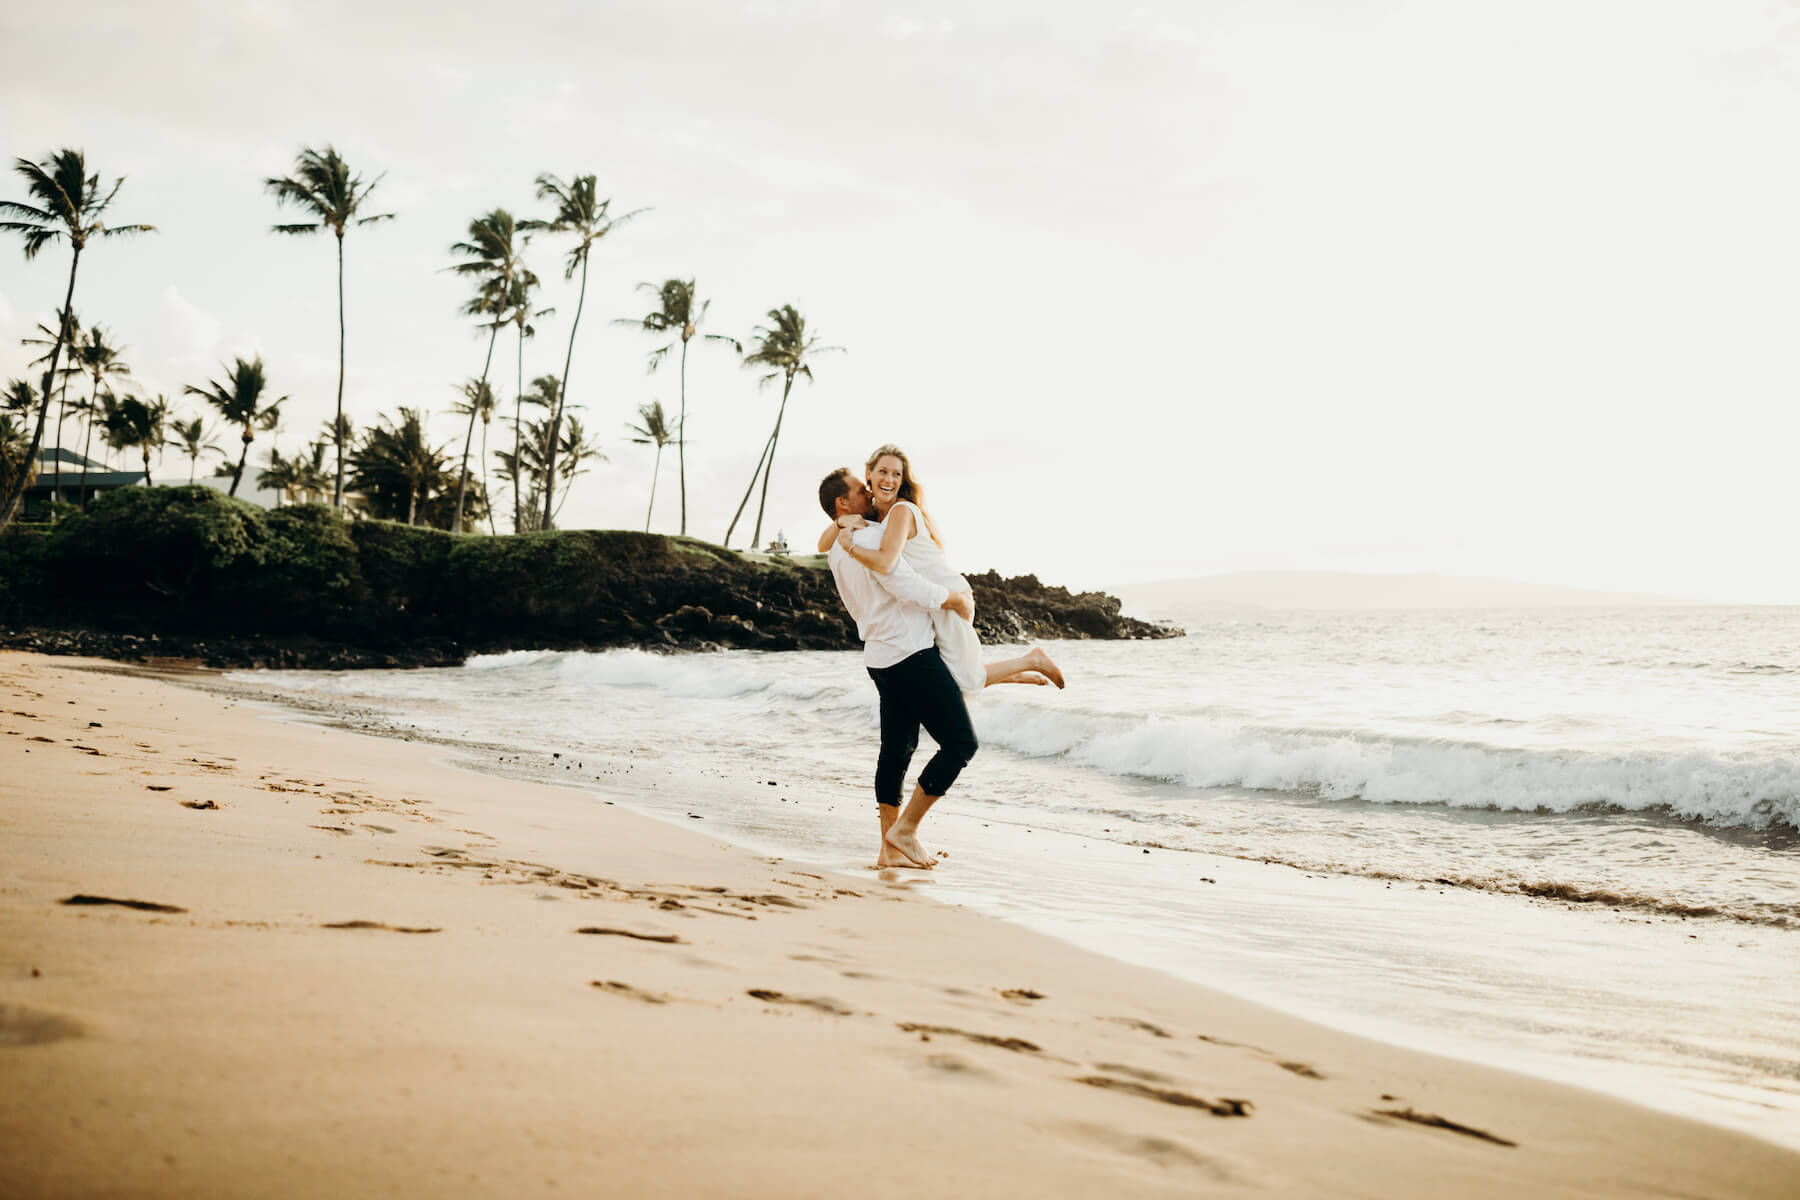 Couple having fun, the woman is being lifted along a sandy shoreline in Maui, USA